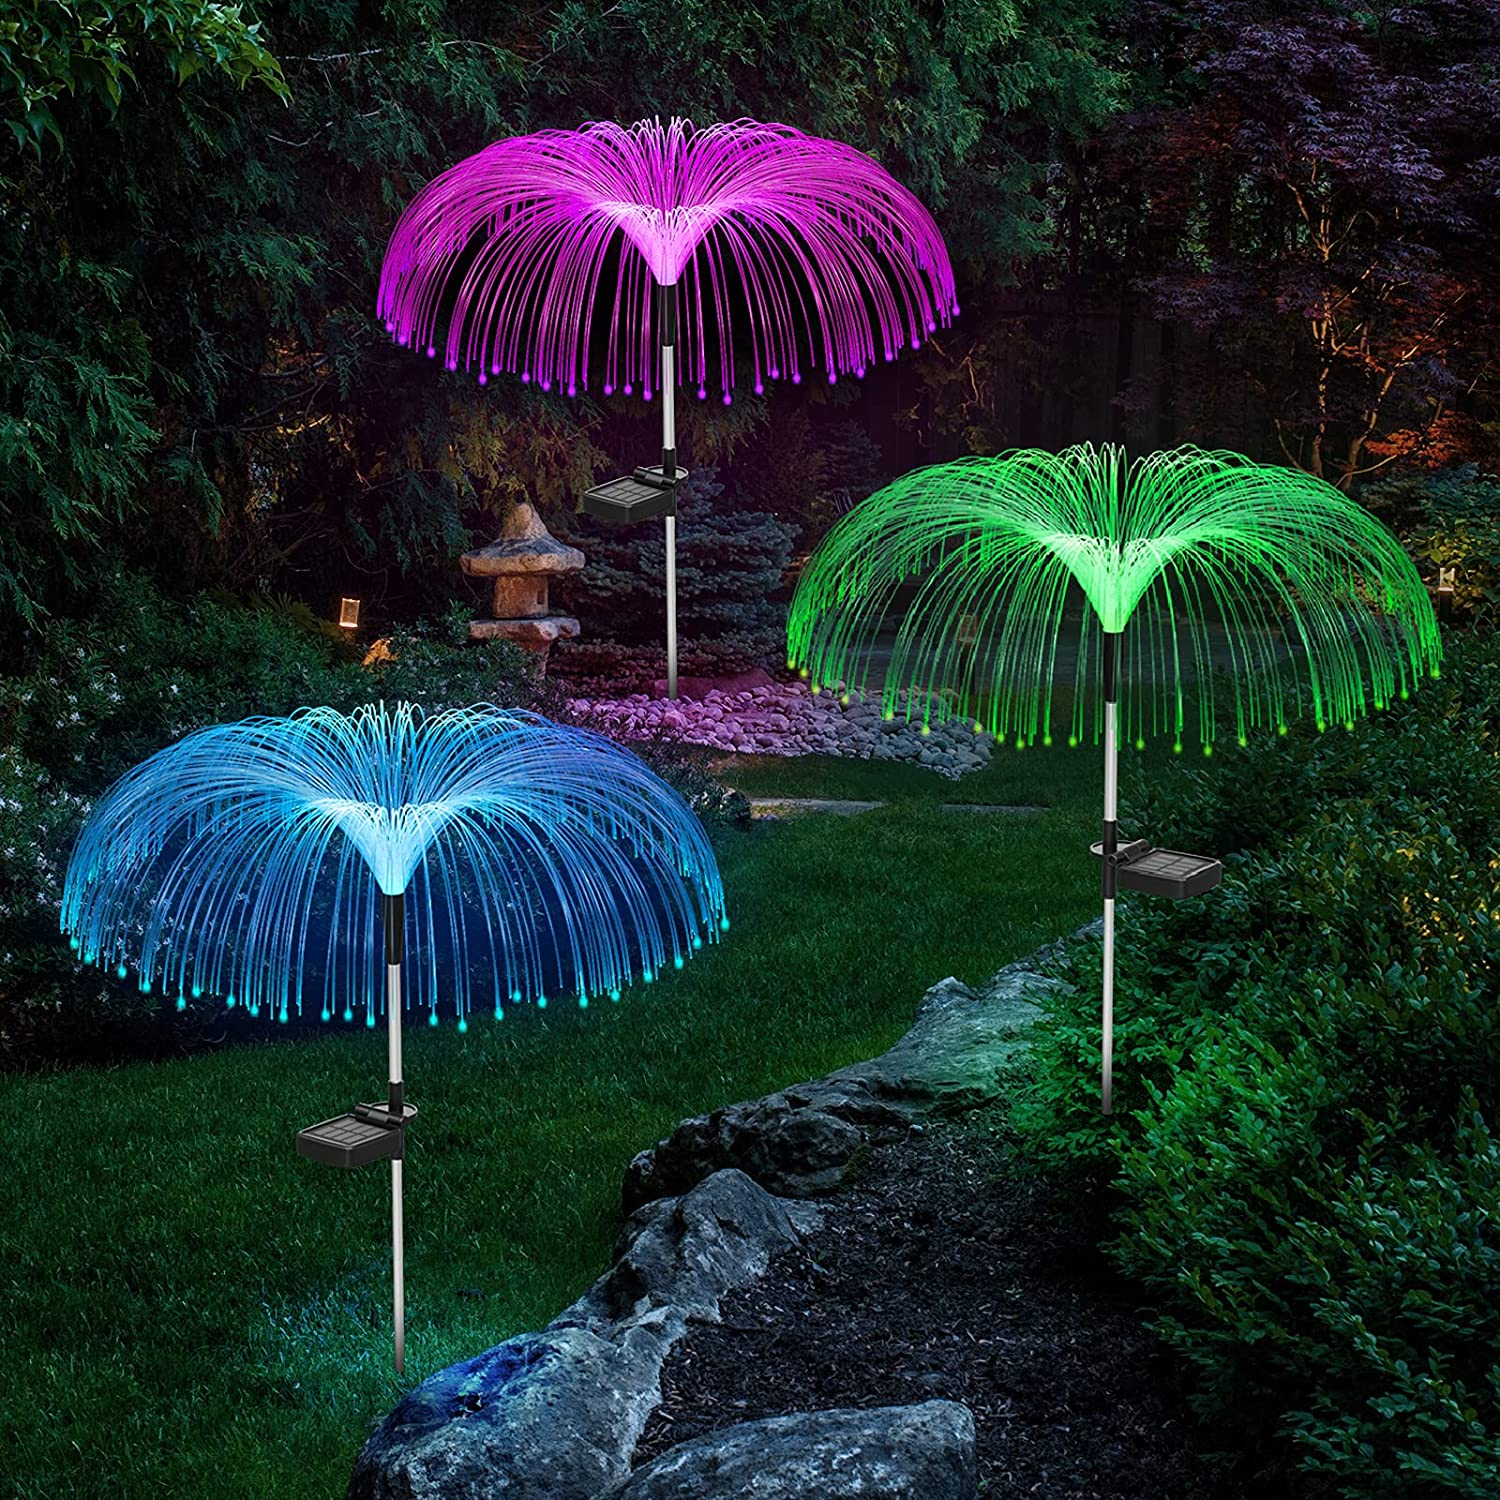 Solar Garden Lights Outdoor Waterproof, Vosaro Solar Flower Lights Jellyfish Decorative, 7 Color Changing Solar Powered Stake Light for Yard Patio Pathway Lawn Holiday Christmas Decor, 3 PCS